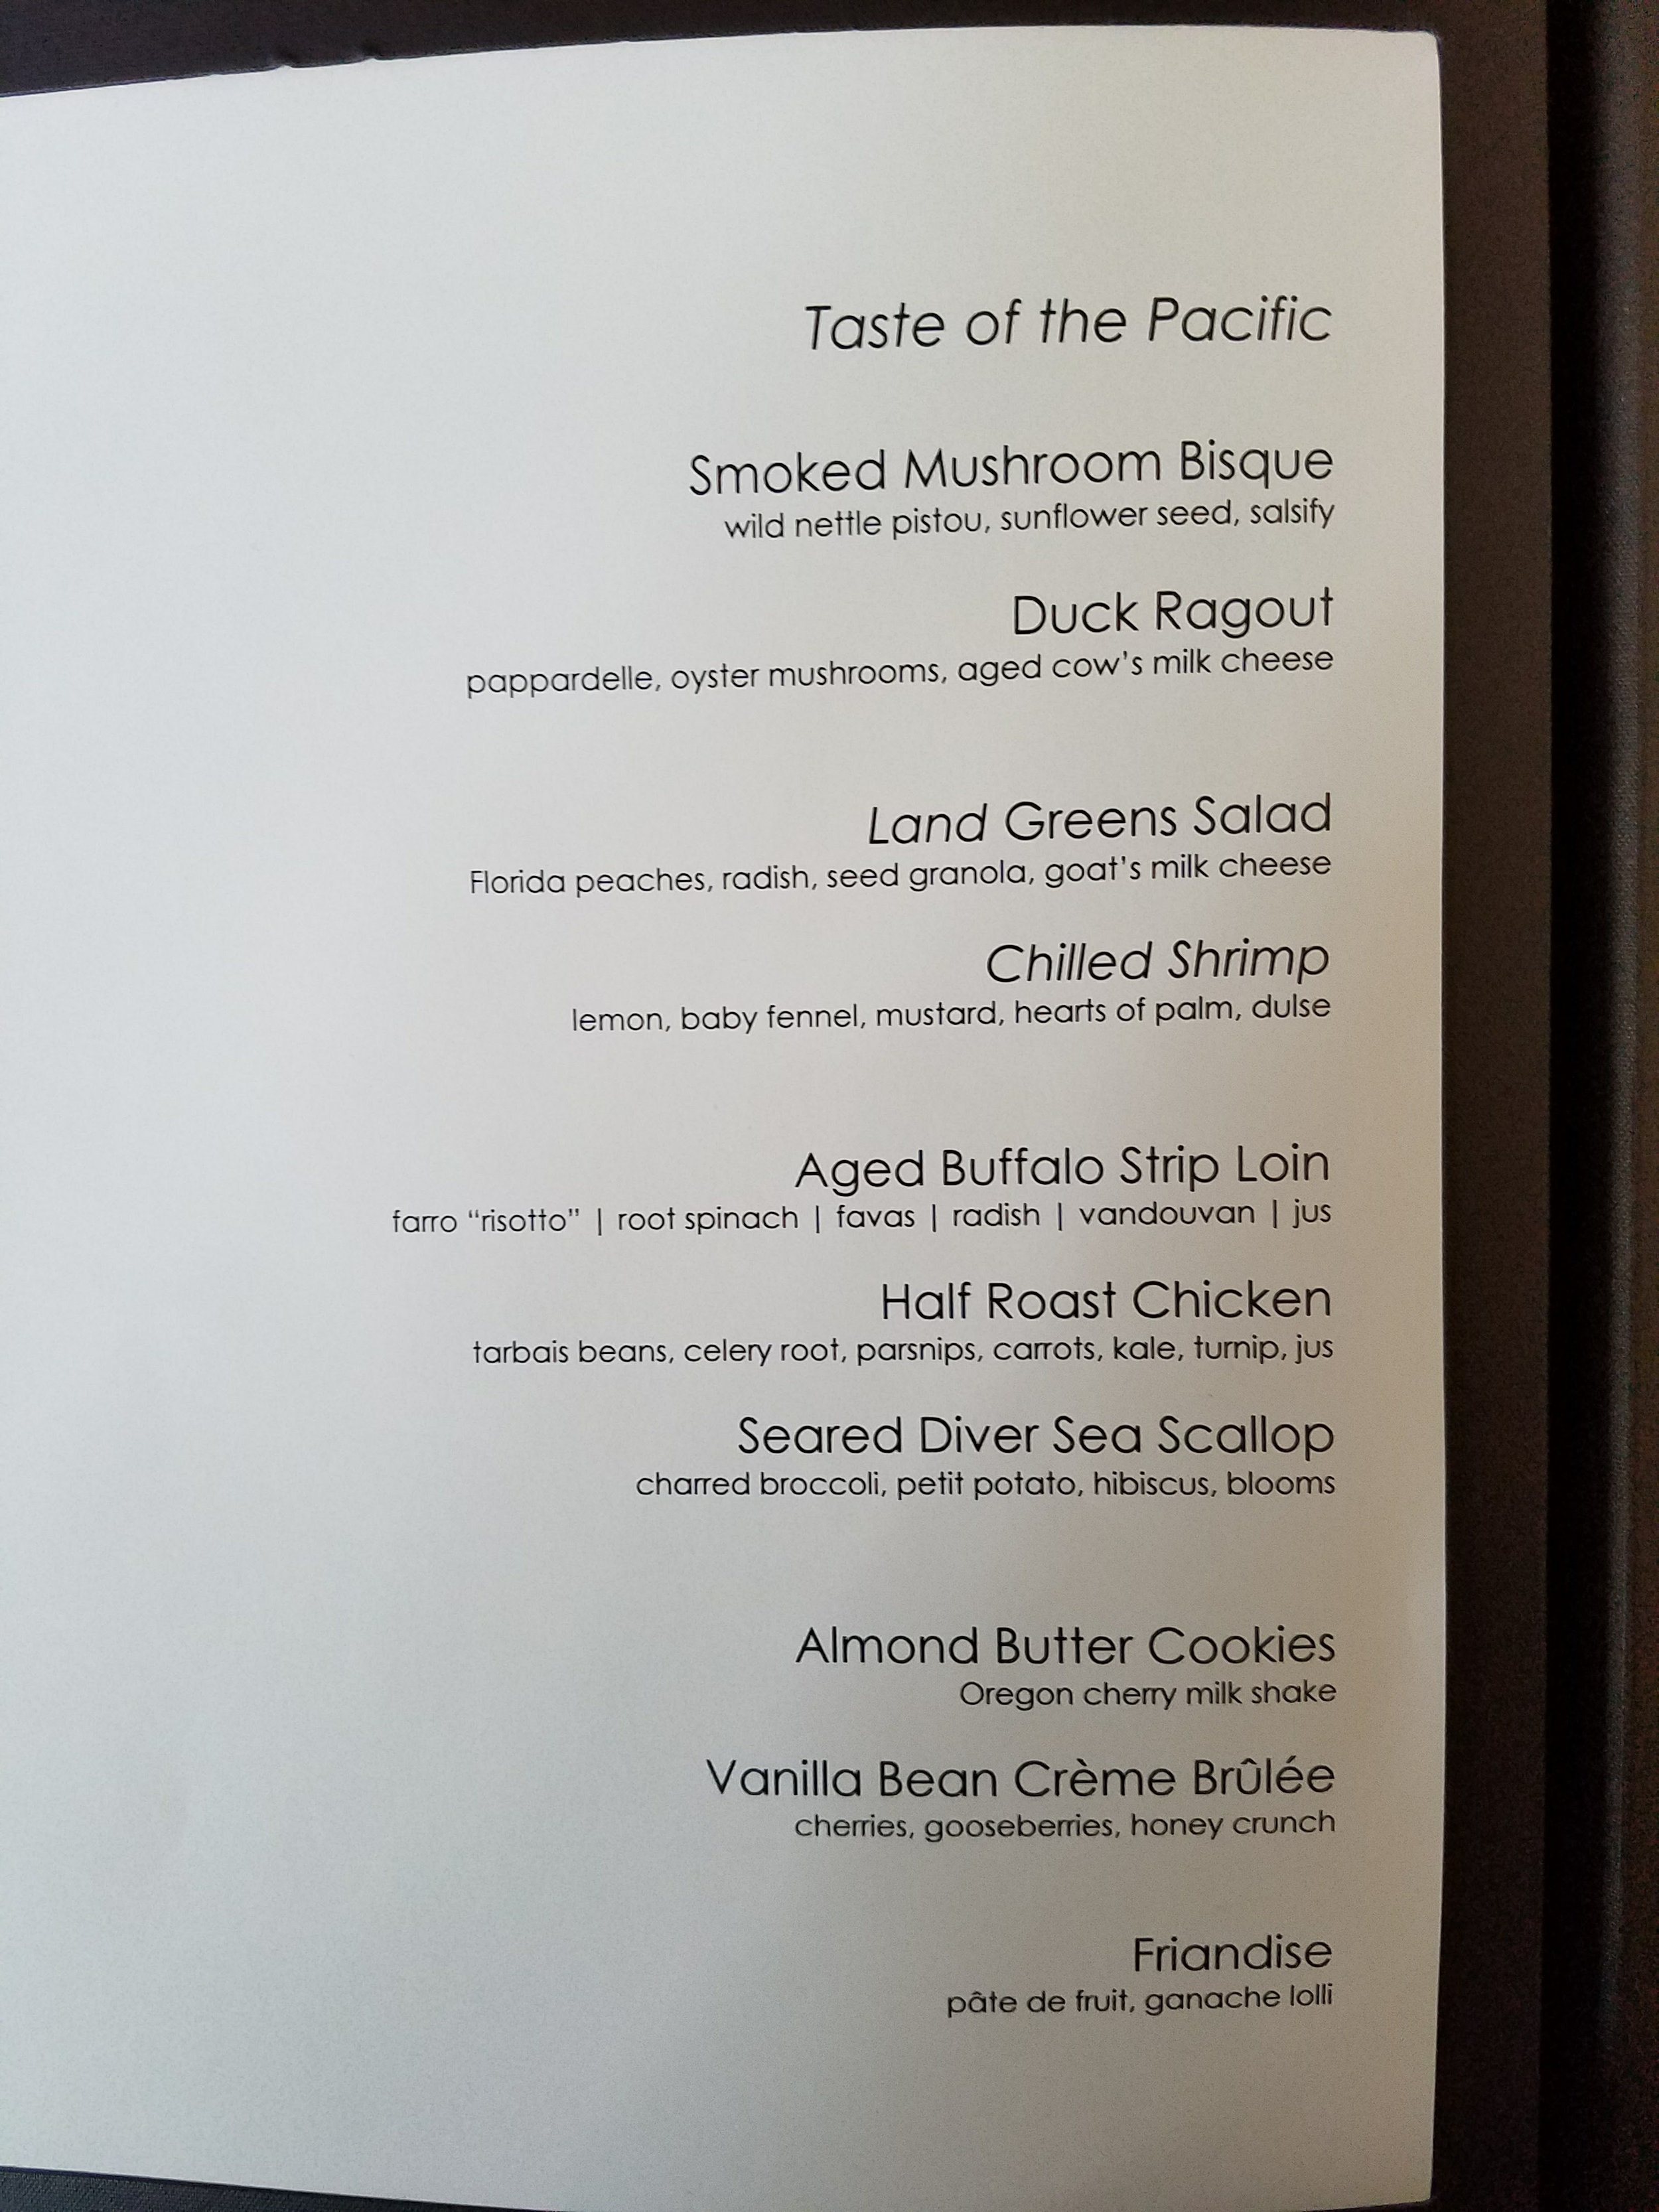 The customizable Taste of the Pacific menu. My selections: Duck Ragout, Land Greens Salad, Aged Buffalo Strip Loin, and Vanilla Bean Crème Brûlée. They throw in the Friandise as a second dessert, which has tasty little fruit jellies and chocolate lollipops.